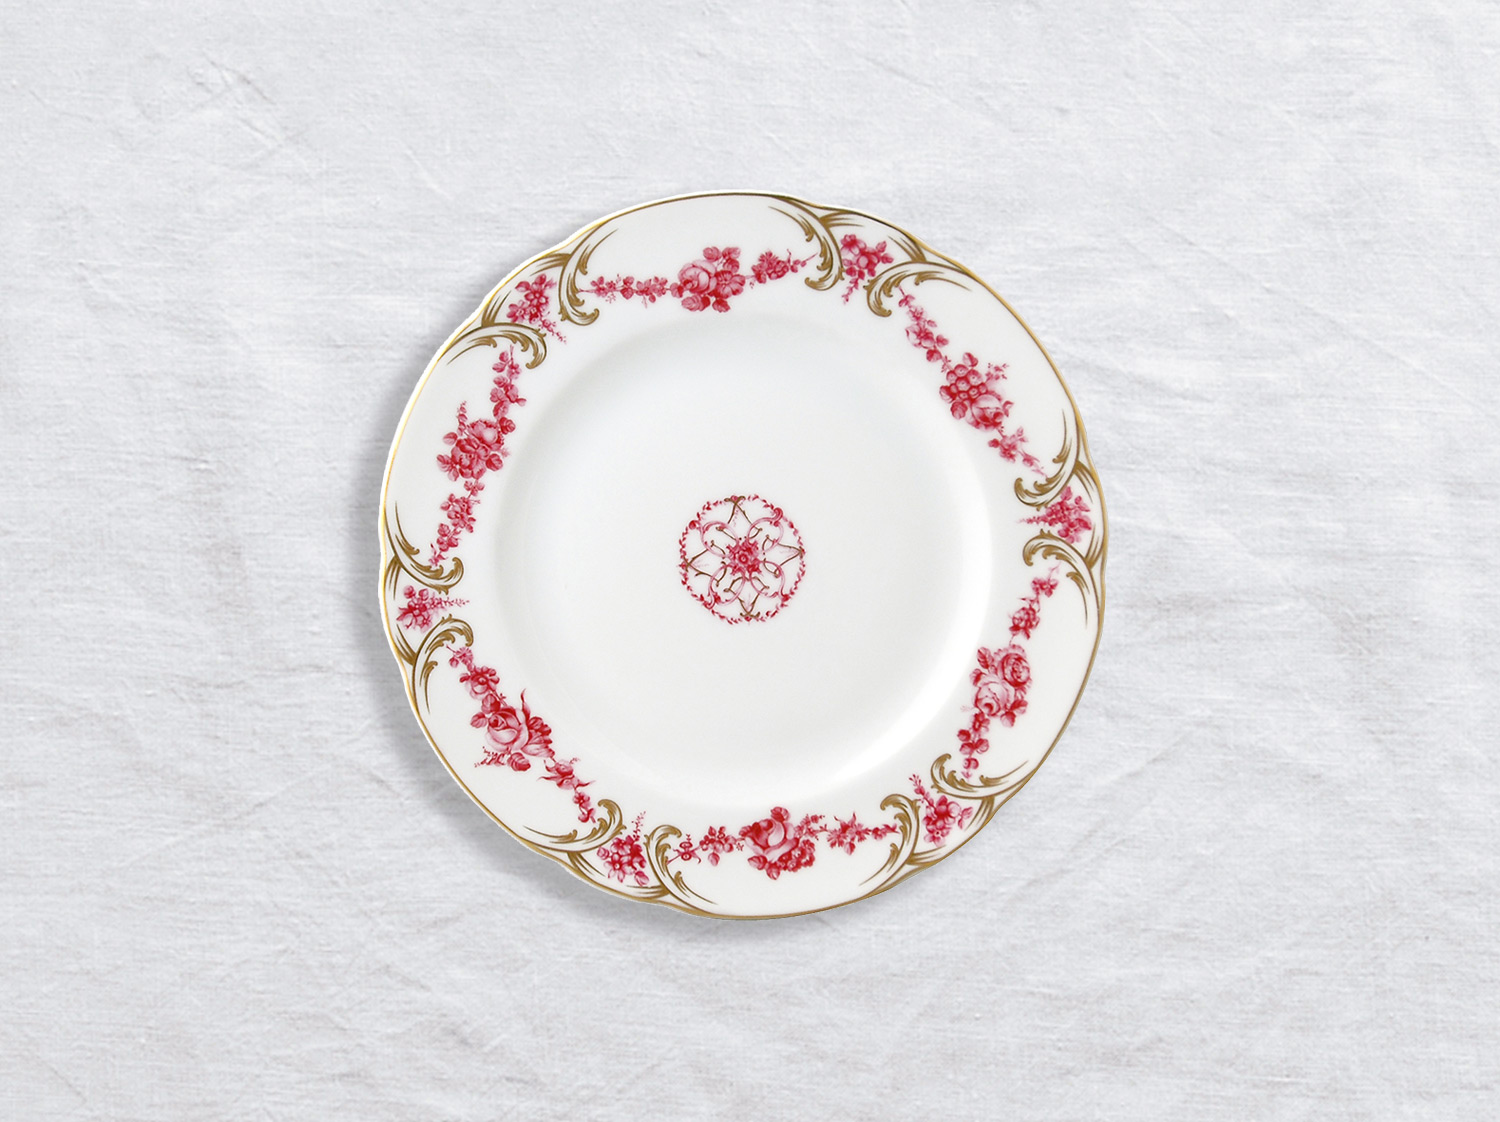 Assiette à pain 16 cm en porcelaine de la collection Louis xv Bernardaud